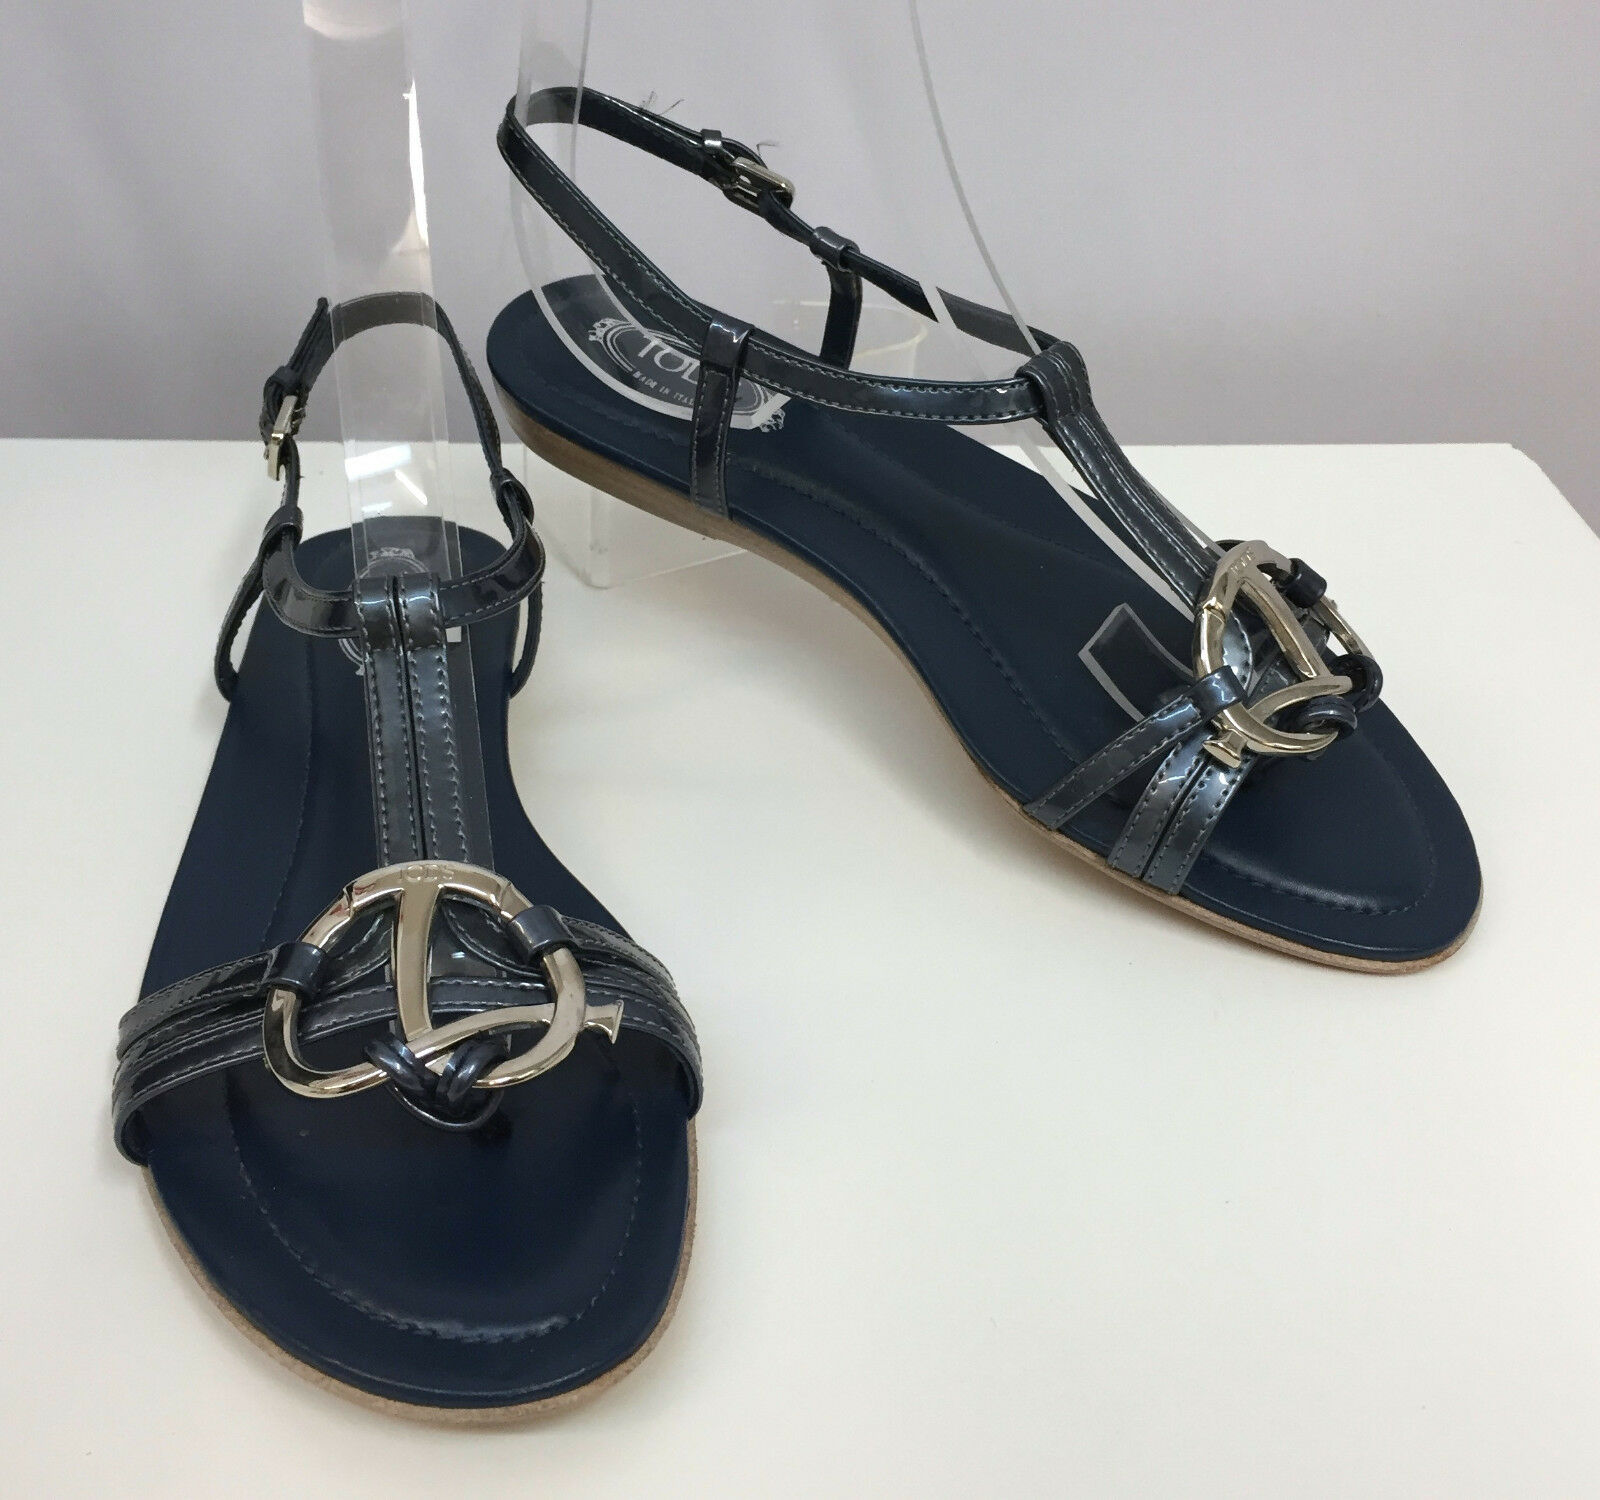 TOD'S SANDALS SHOES blueE PATENT LEATHER GREAT SILVER TONE METAL HARDWARE 36 1 2